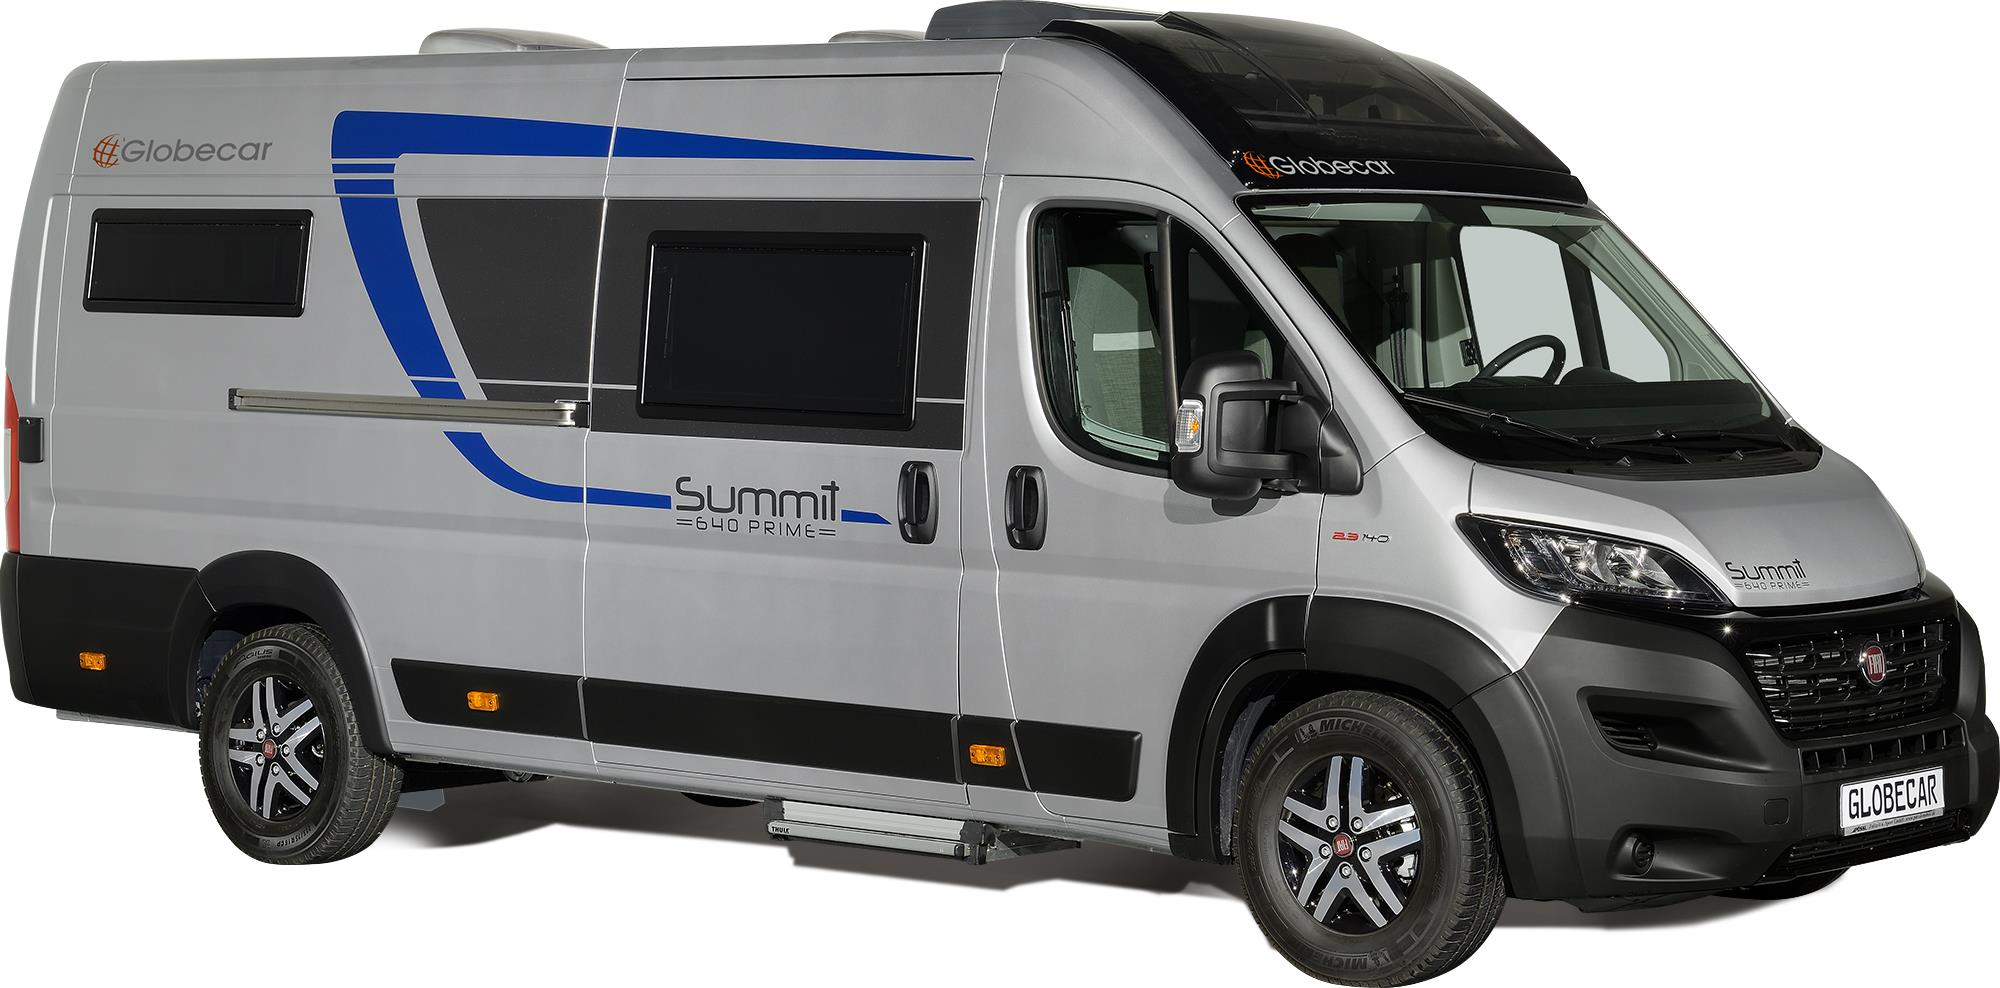 Globecar Summit Prime 640